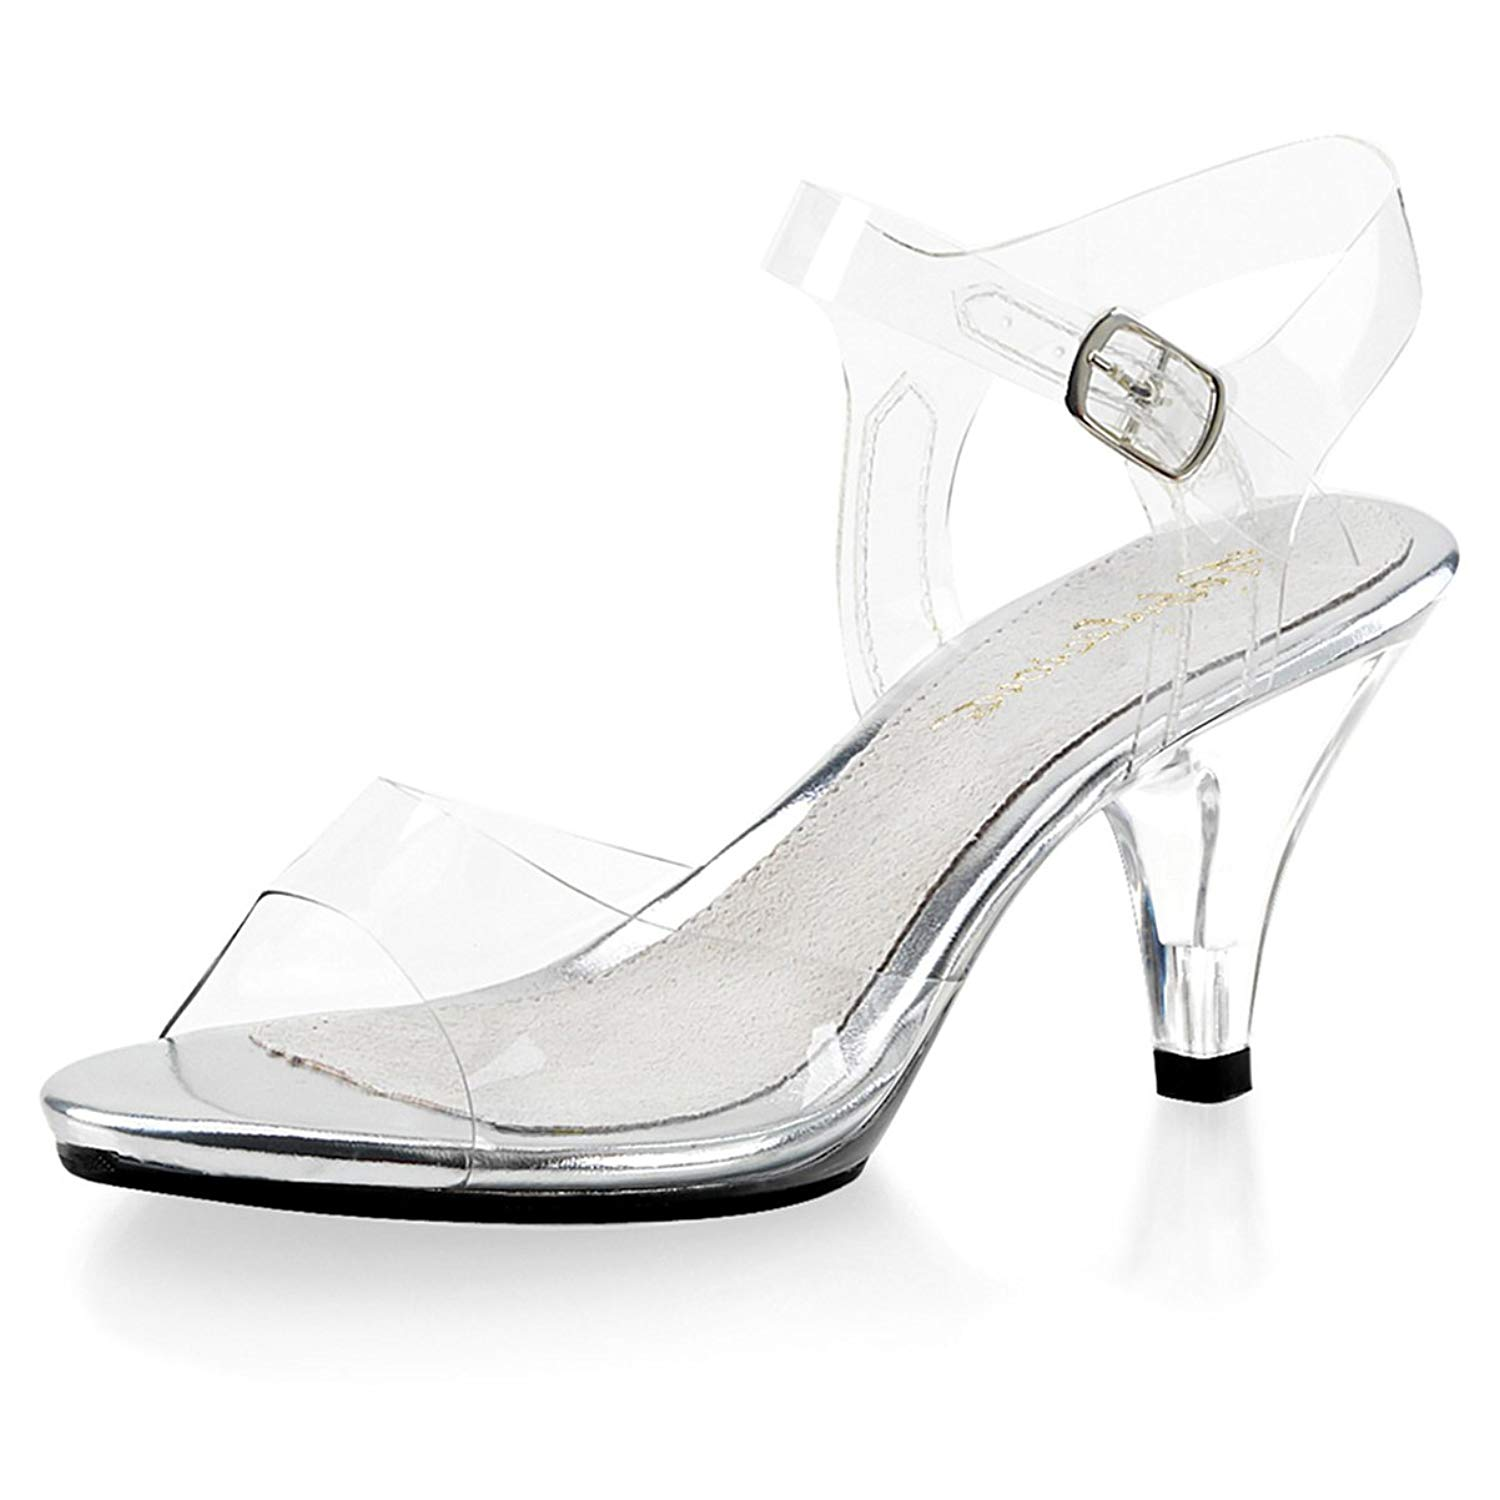 c75c14484dd Get Quotations · Summitfashions Demure and Elegant Women s Clear Strappy  Sandals with 3 Inch Lucite Heels